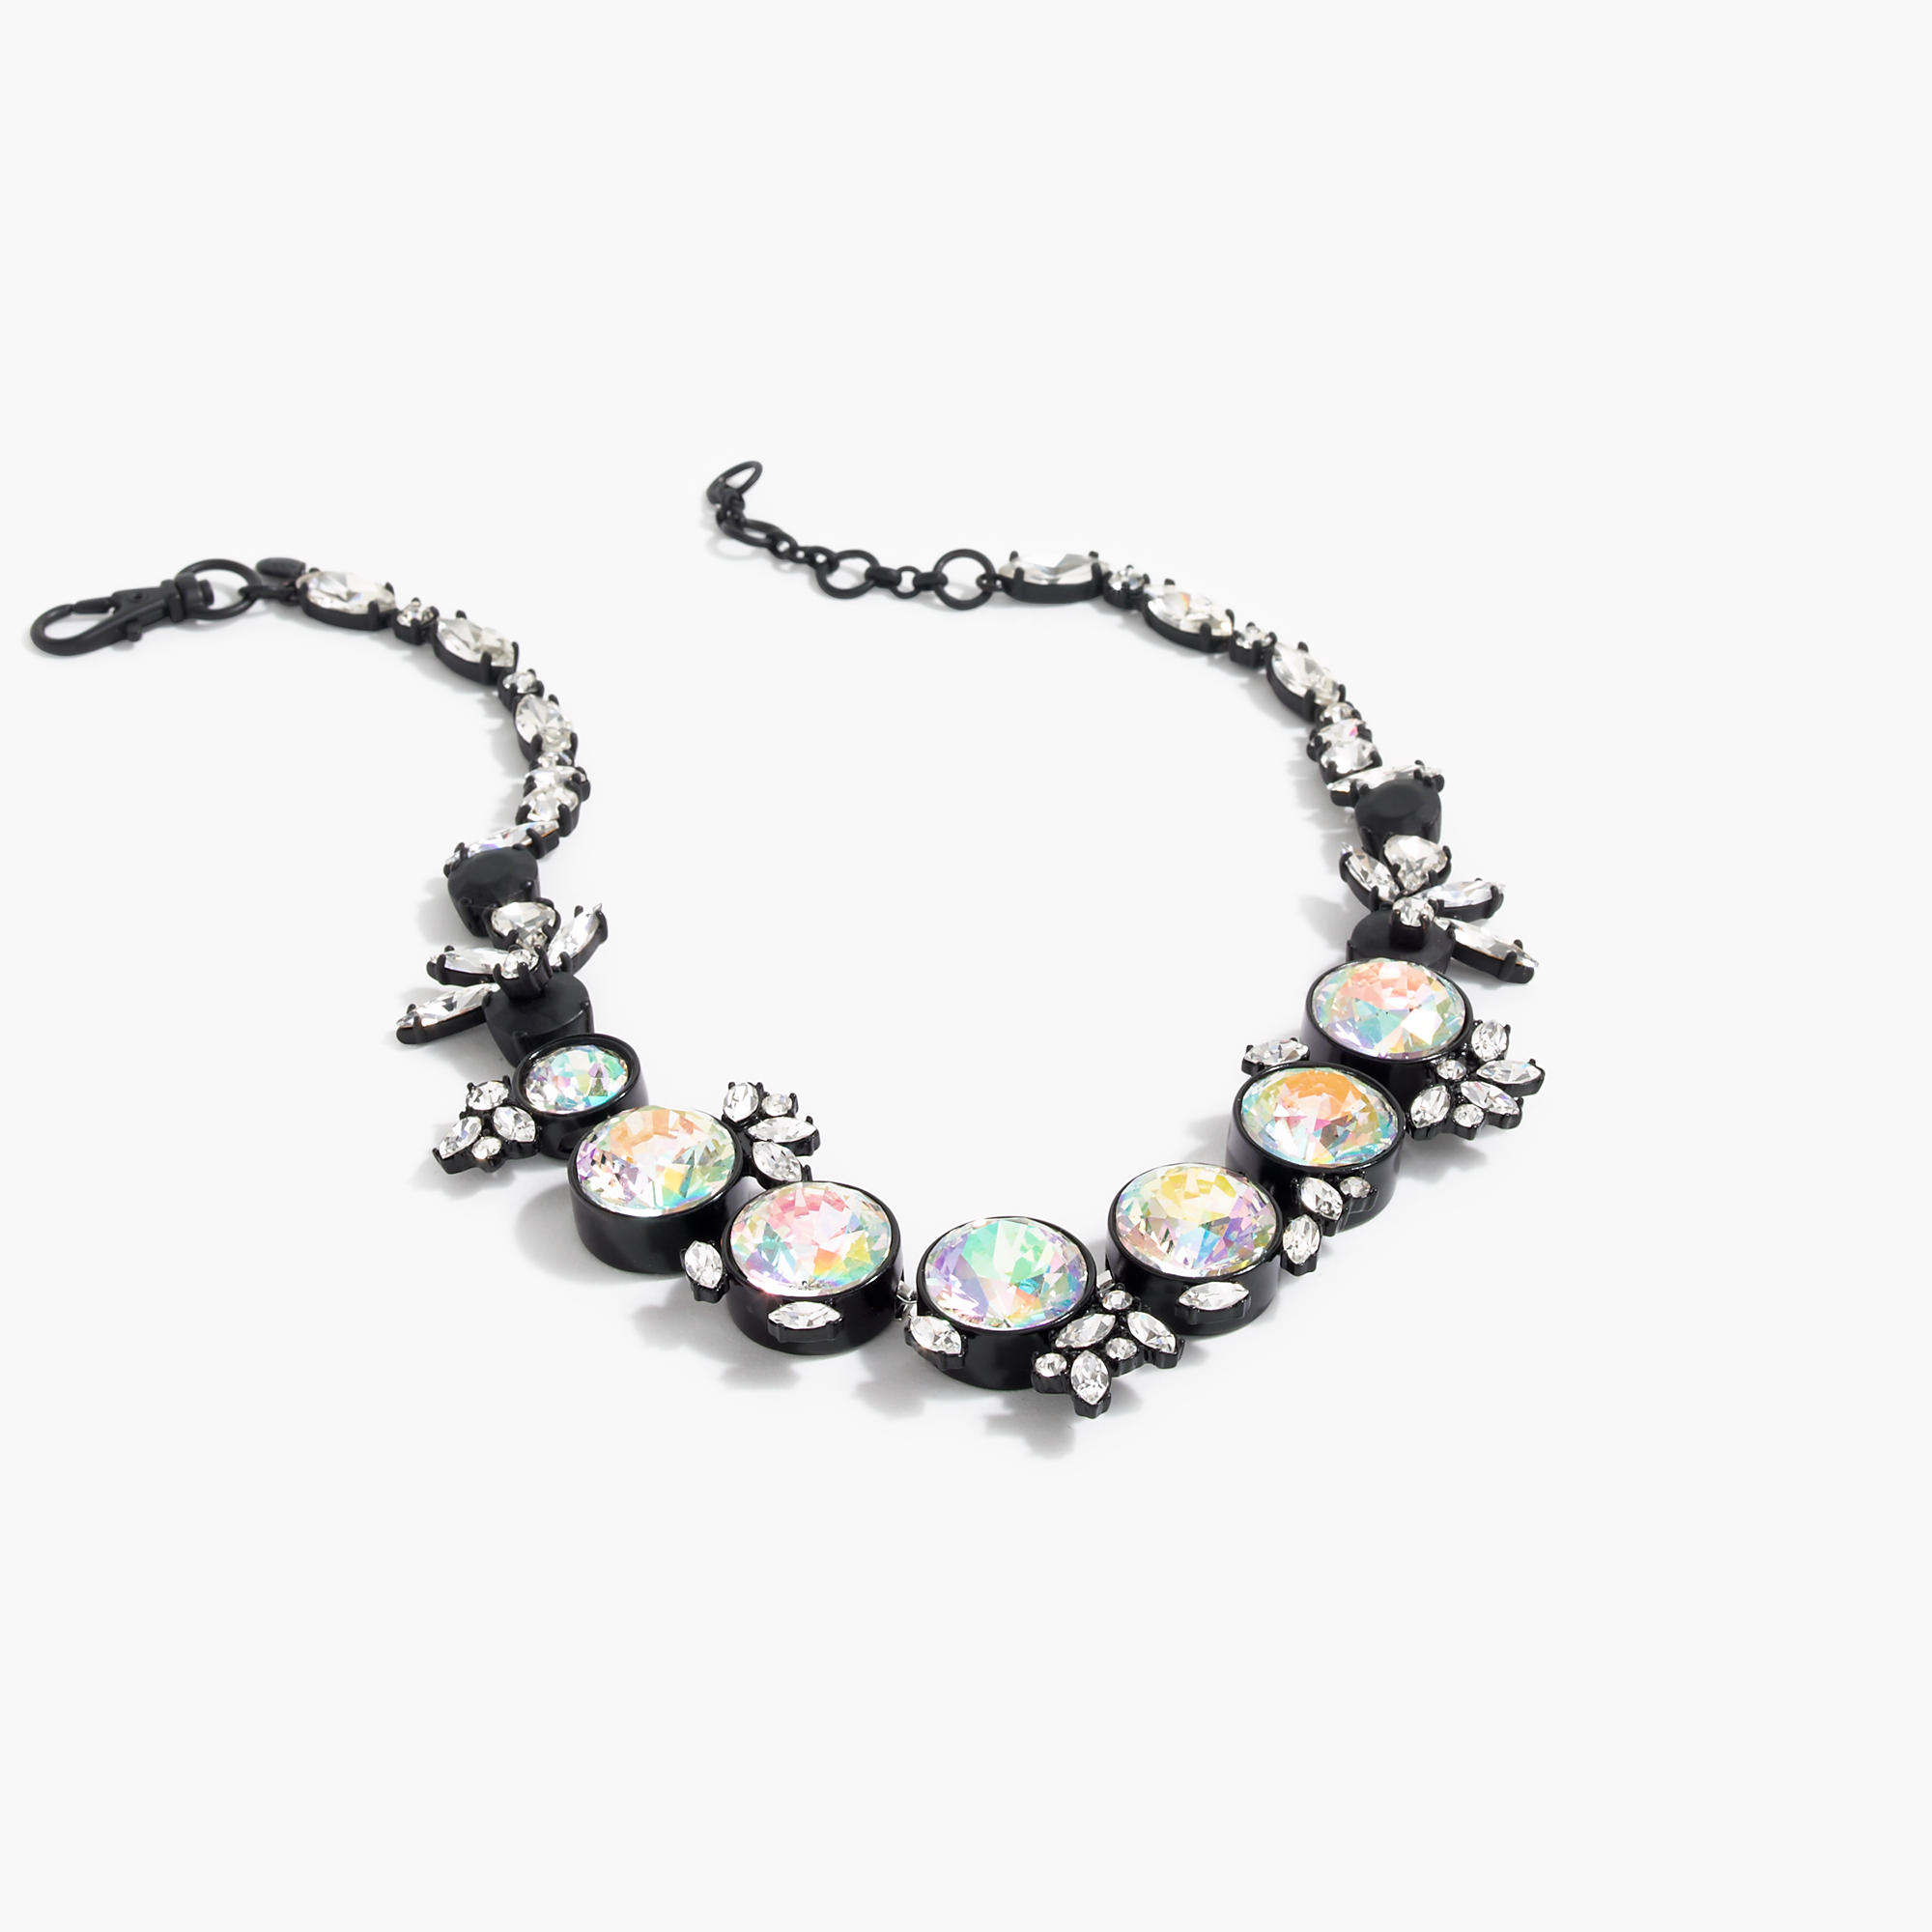 jewelry moma iridescent a accessories meteor color necklace design in store